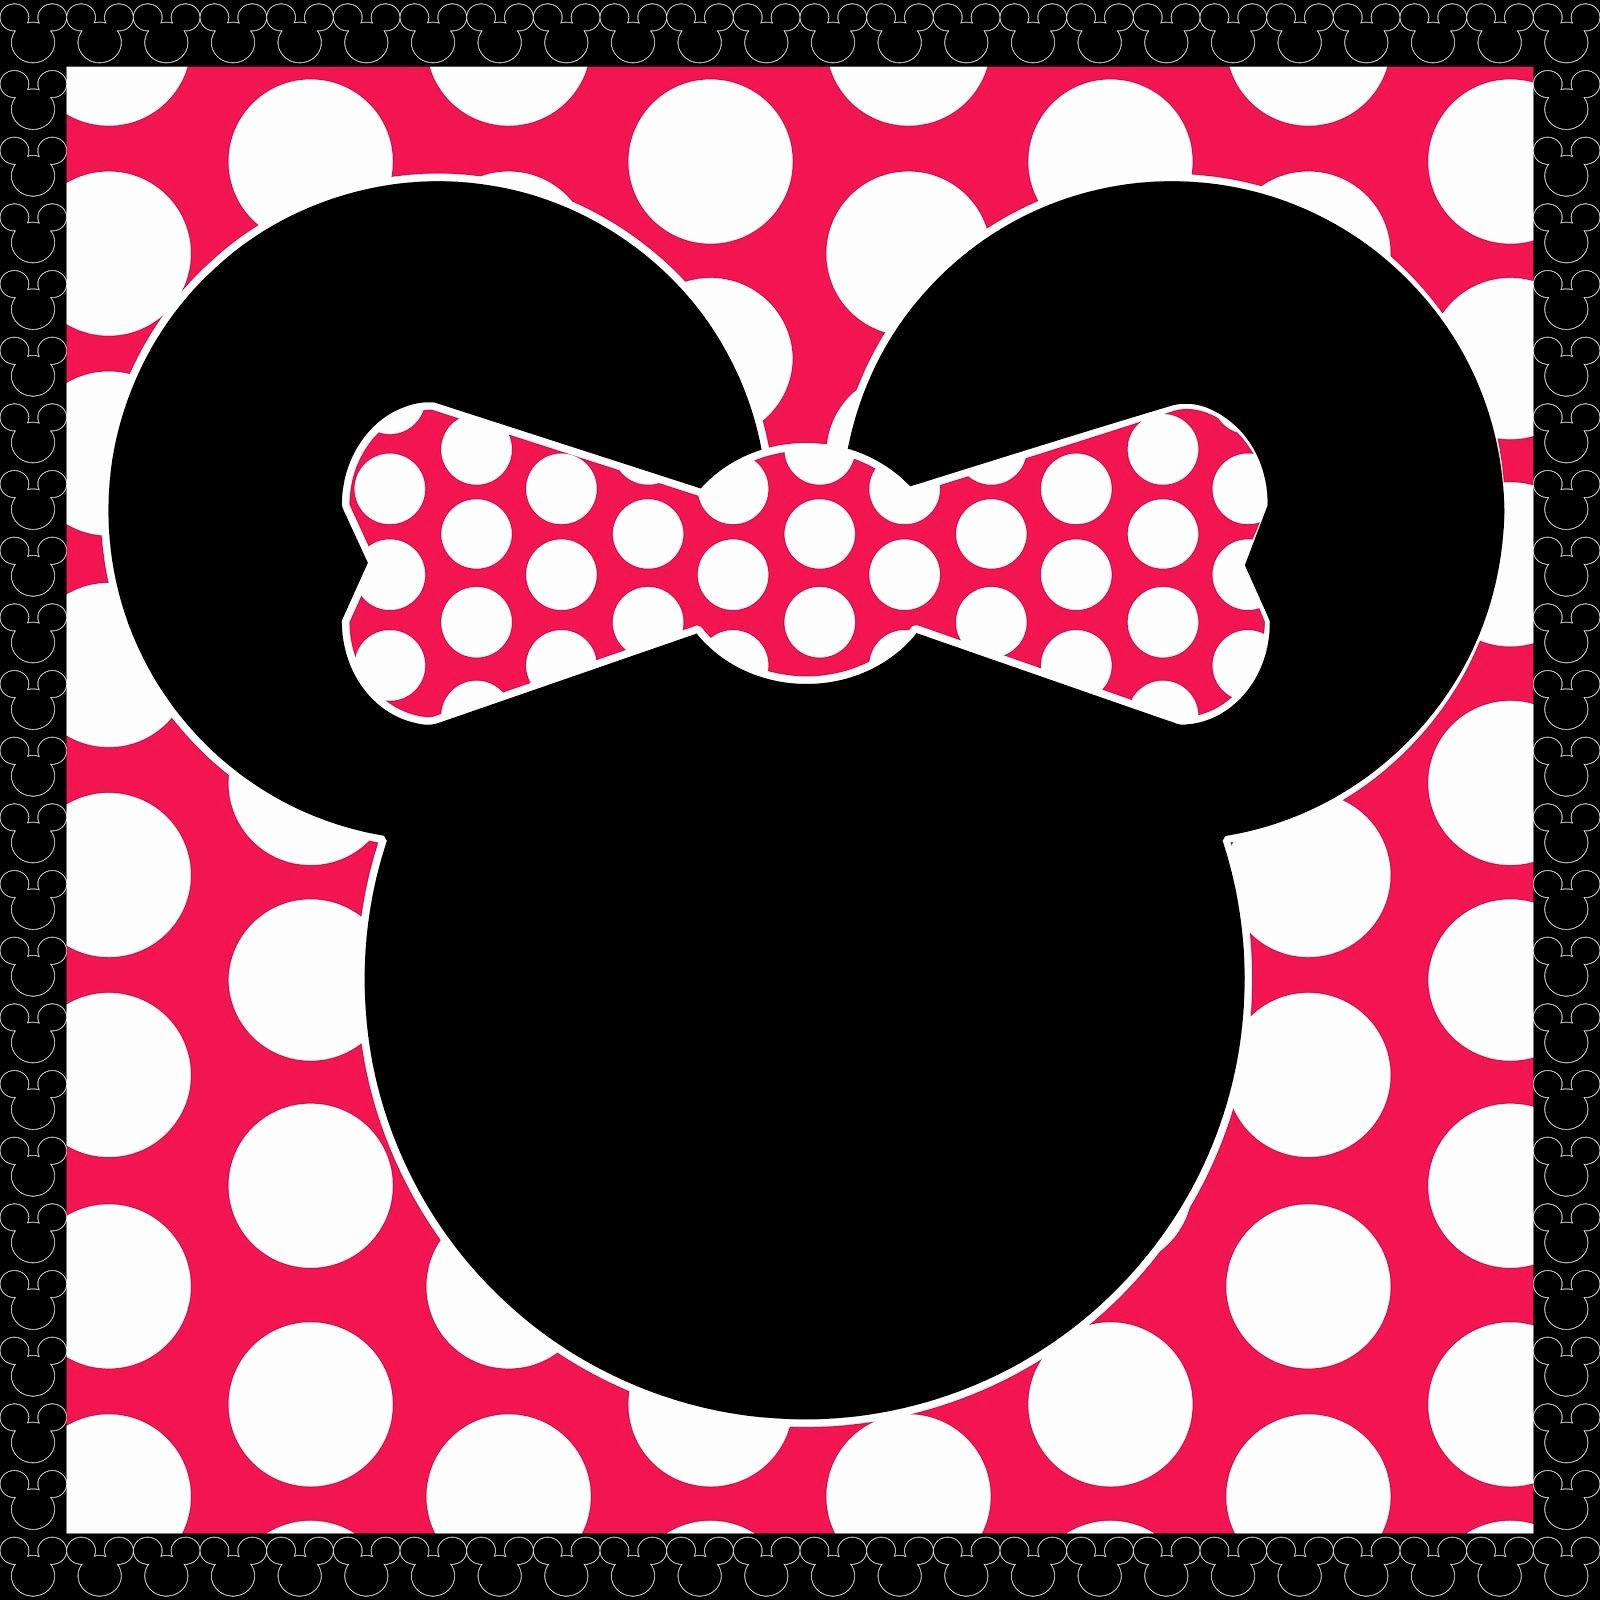 Printable Minnie Mouse Invitations Lovely Freebie Minnie Mouse Printable by Scrapdiggity